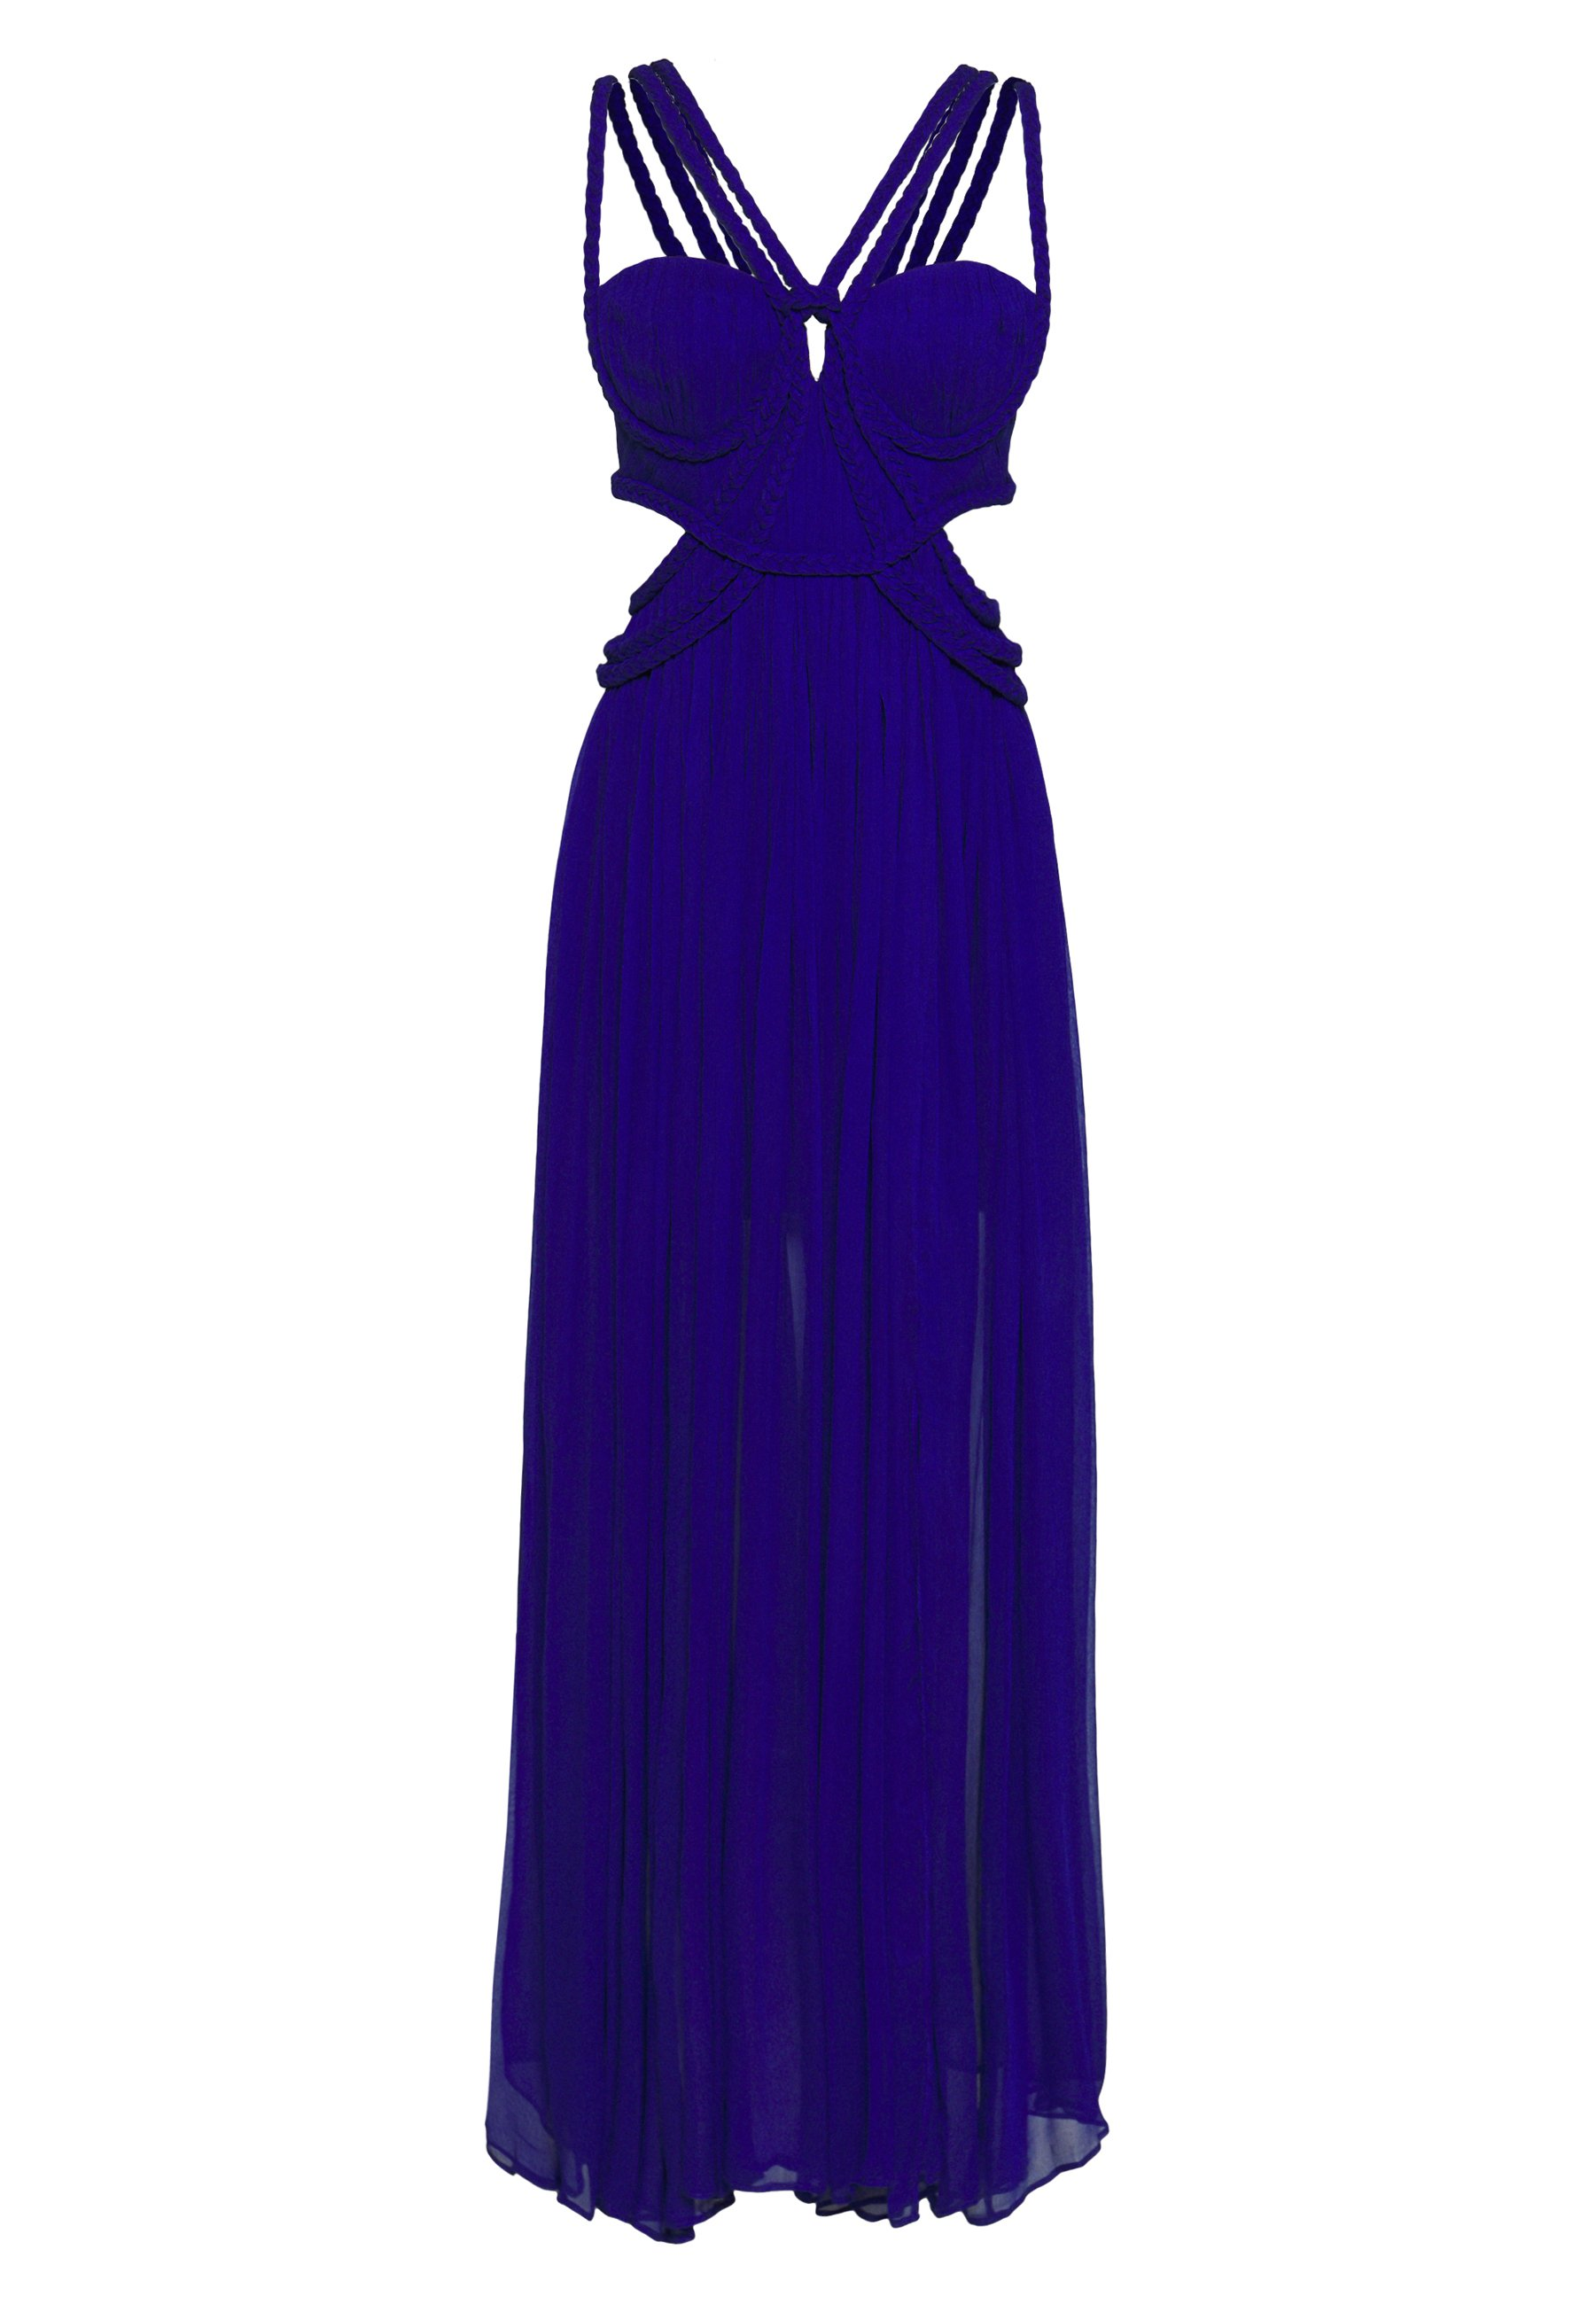 Thurley Star Sign Gown - Occasion Wear Royal Blue UK